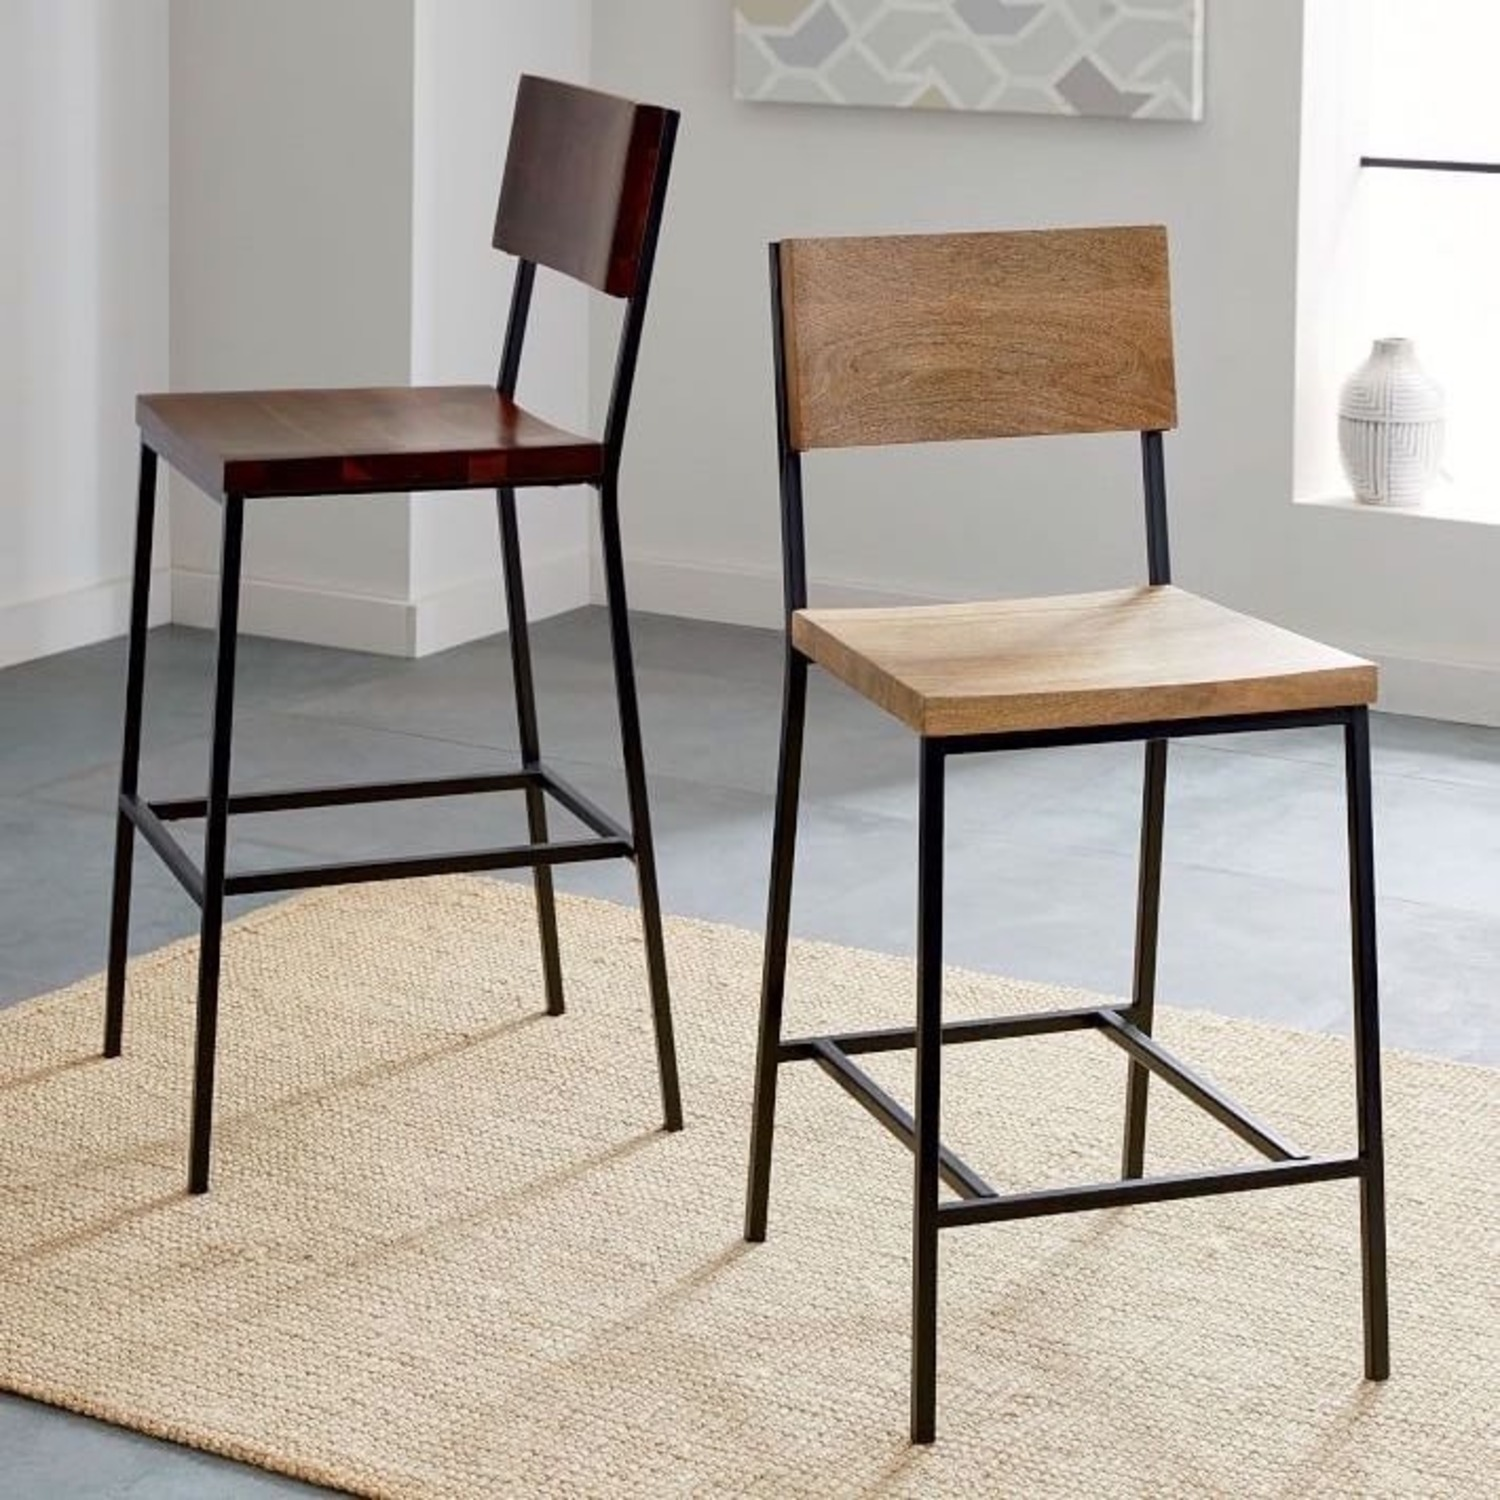 West Elm Rustic Counter Stools - Set of 2 - image-1